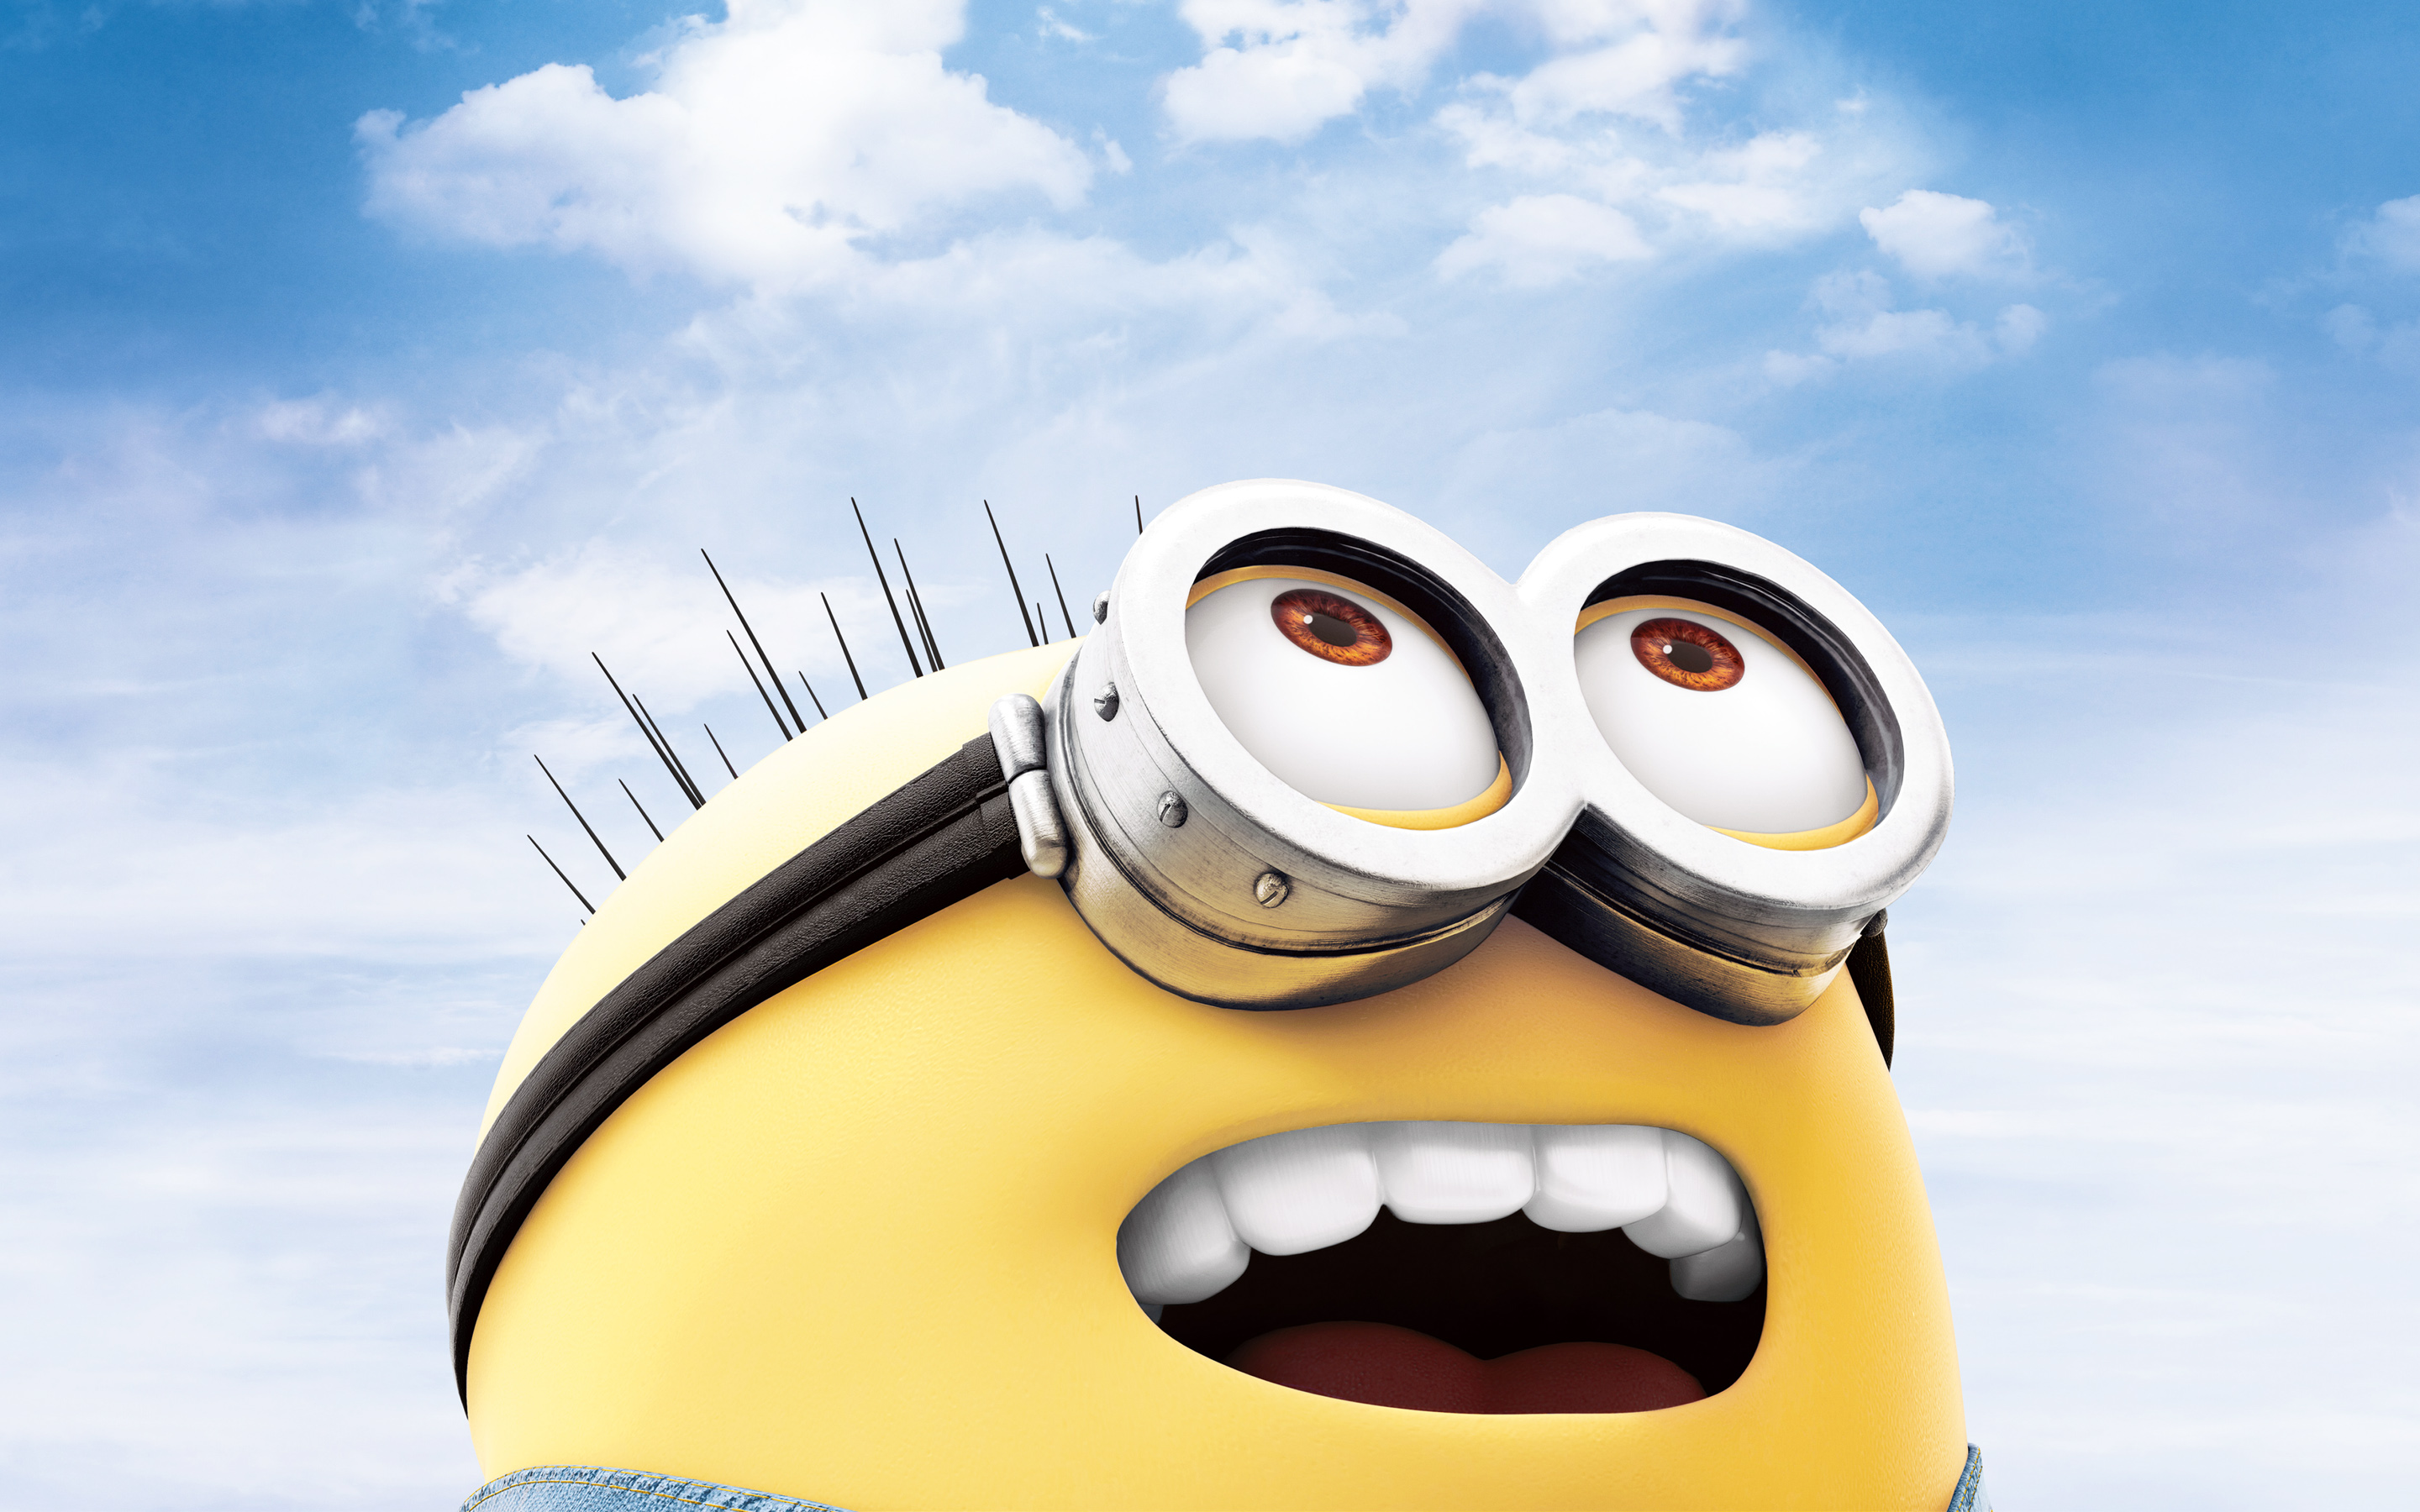 Minion in Despicable Me 2 Wallpapers HD Wallpapers 2880x1800